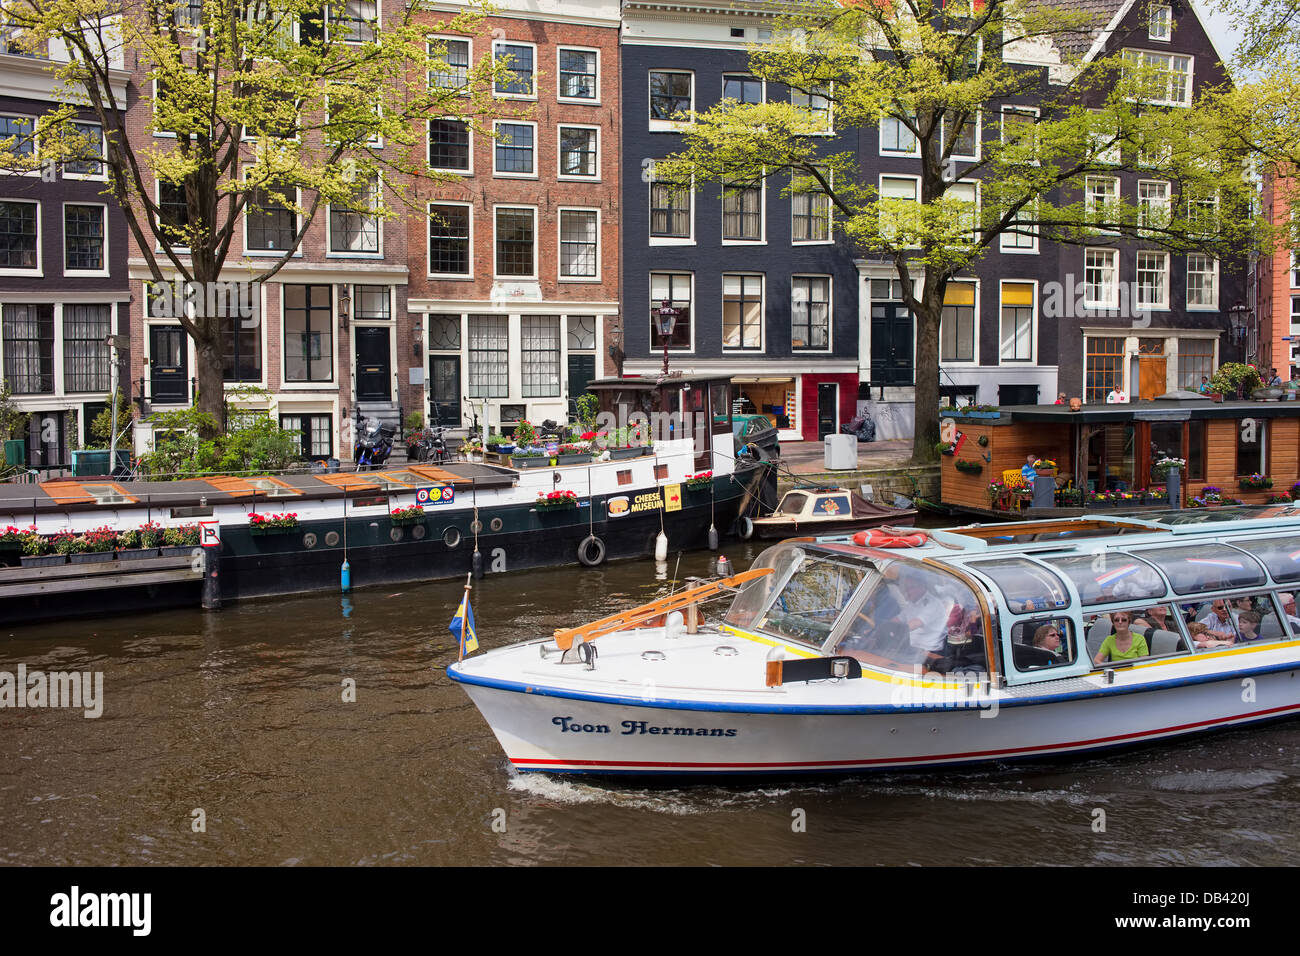 Boat cruise along Prinsengracht canal in city Amsterdam, Holland, Netherlands. - Stock Image